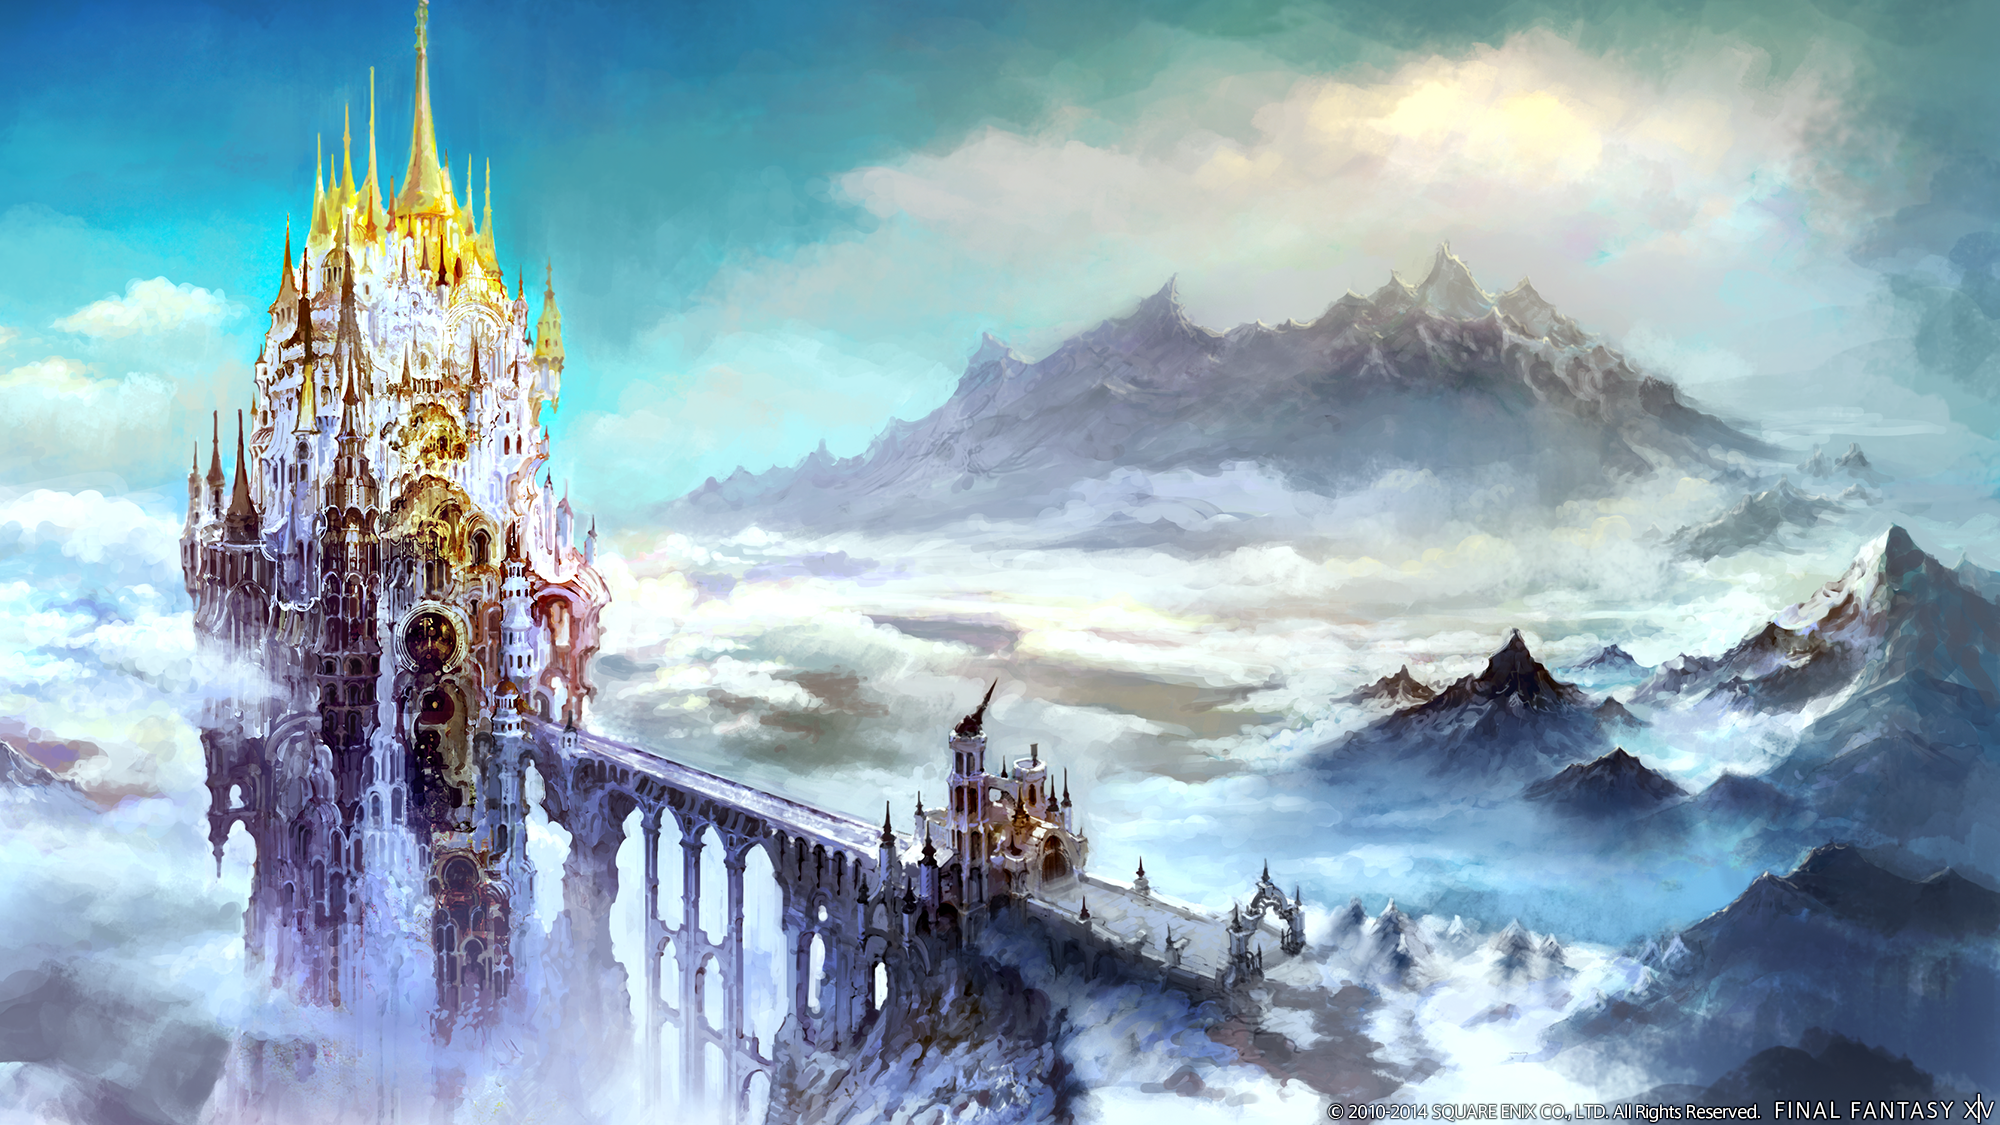 final fantasy xiv wallpaper 1920x1080 images pictures